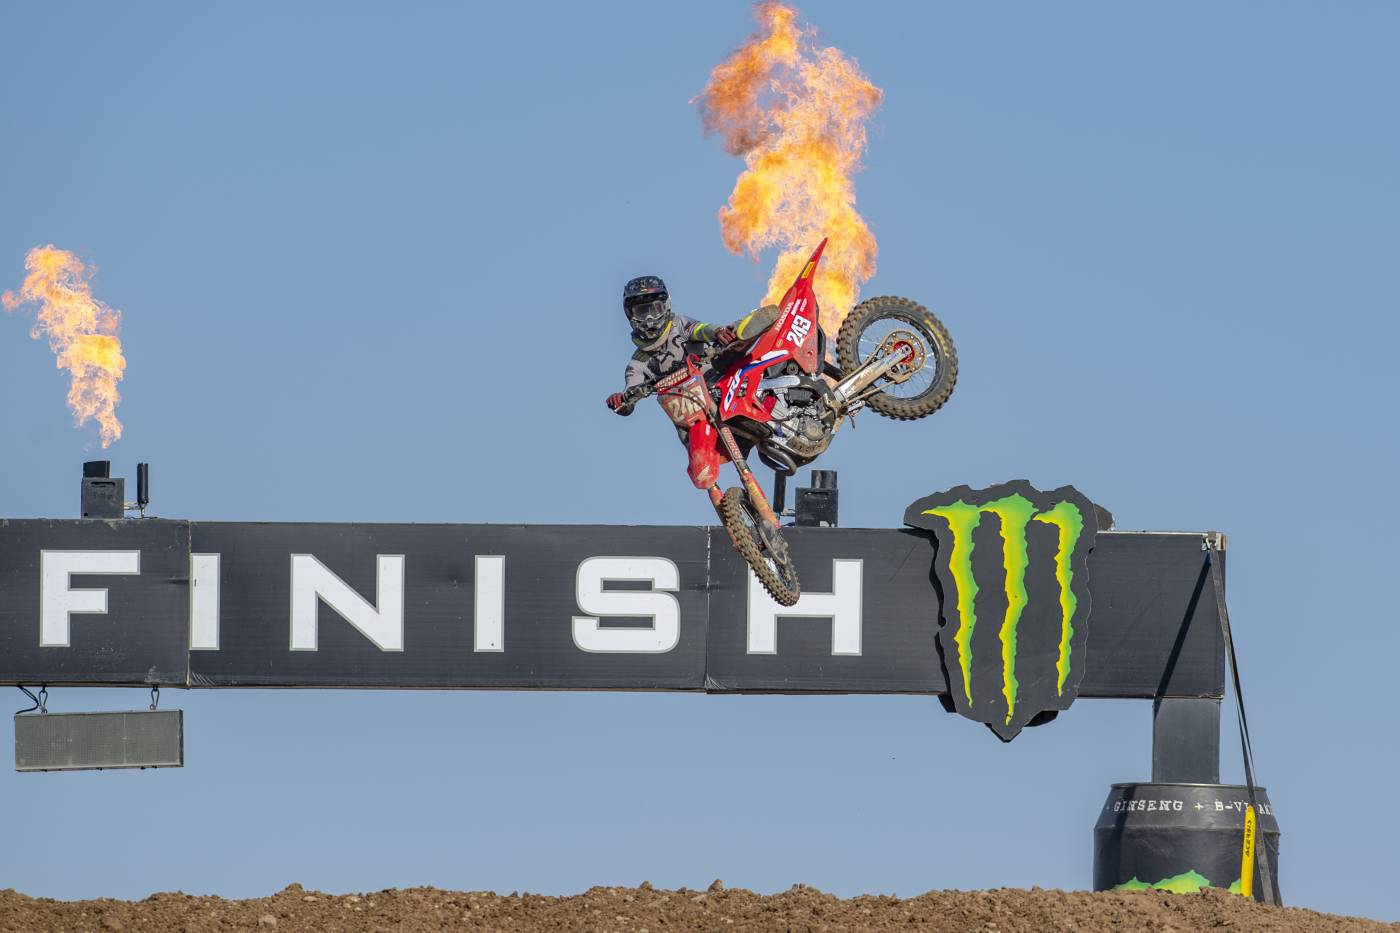 Tim Gajser leads the MXGP championship with an epic race two win in Turkey